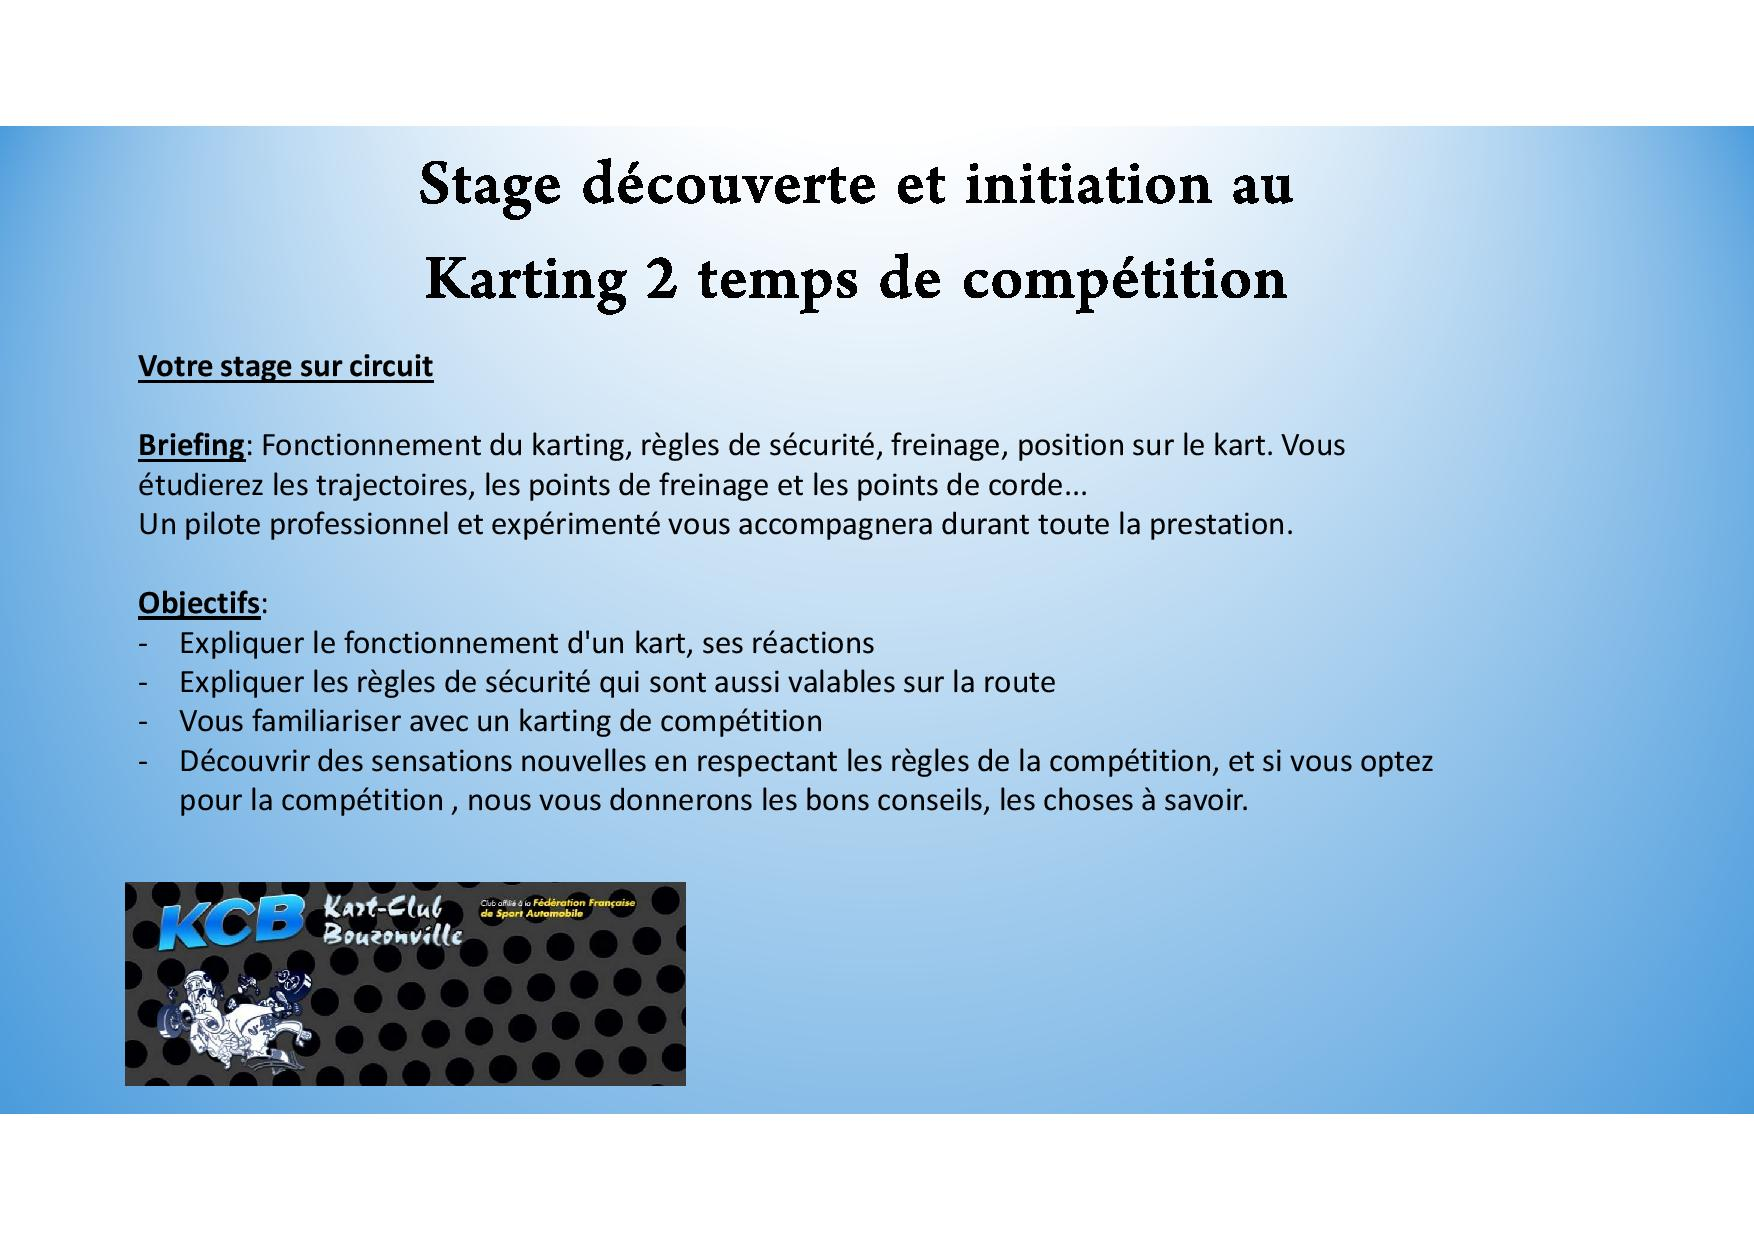 Stage decouverte et initiation au karting 2 temps page 001